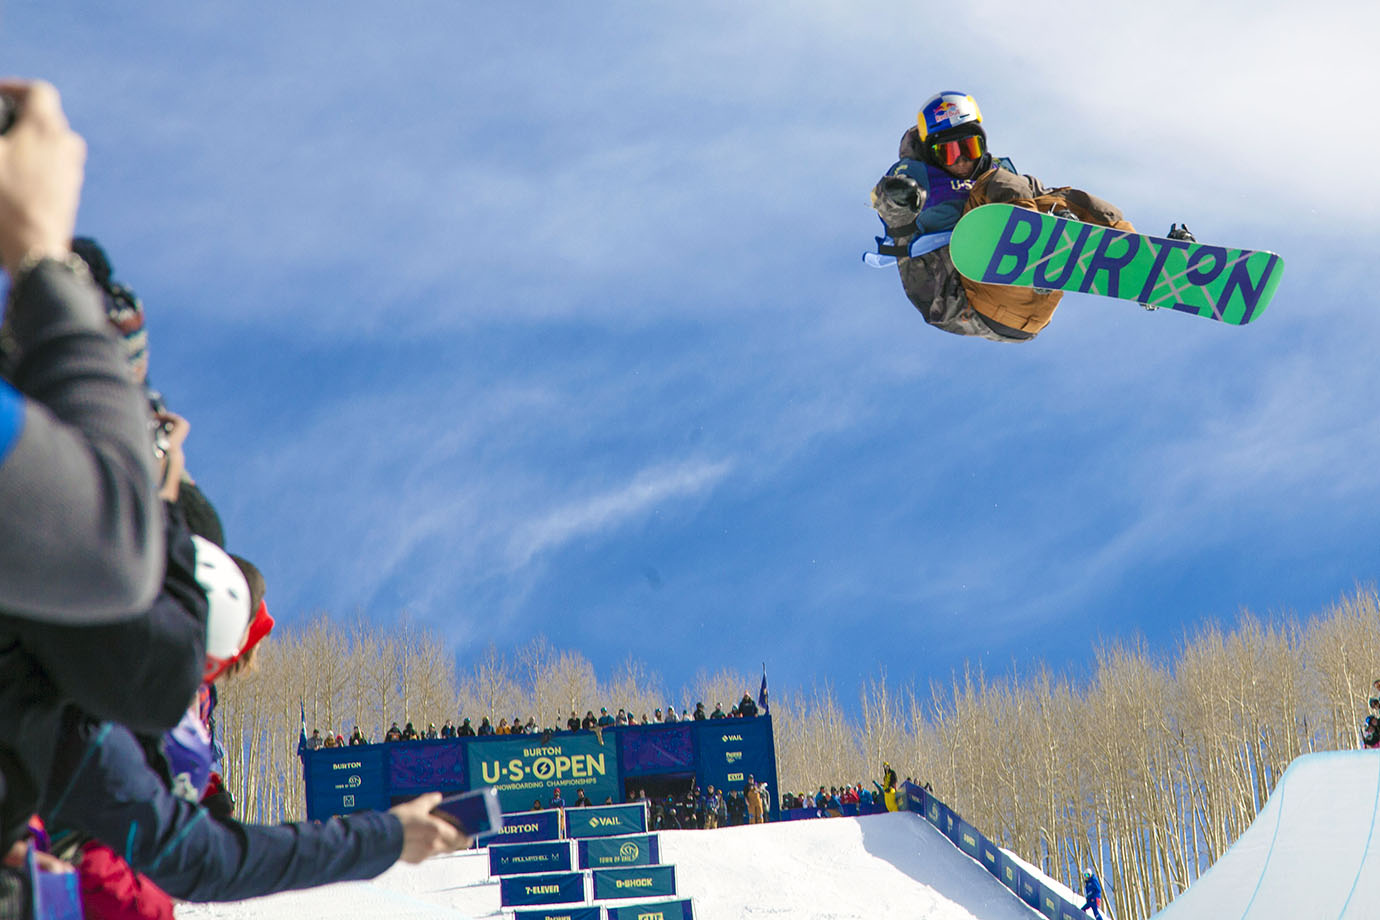 Taku Hiraoka takes third place in the men's snowboard final behind Ben Ferguson and Shaun White.